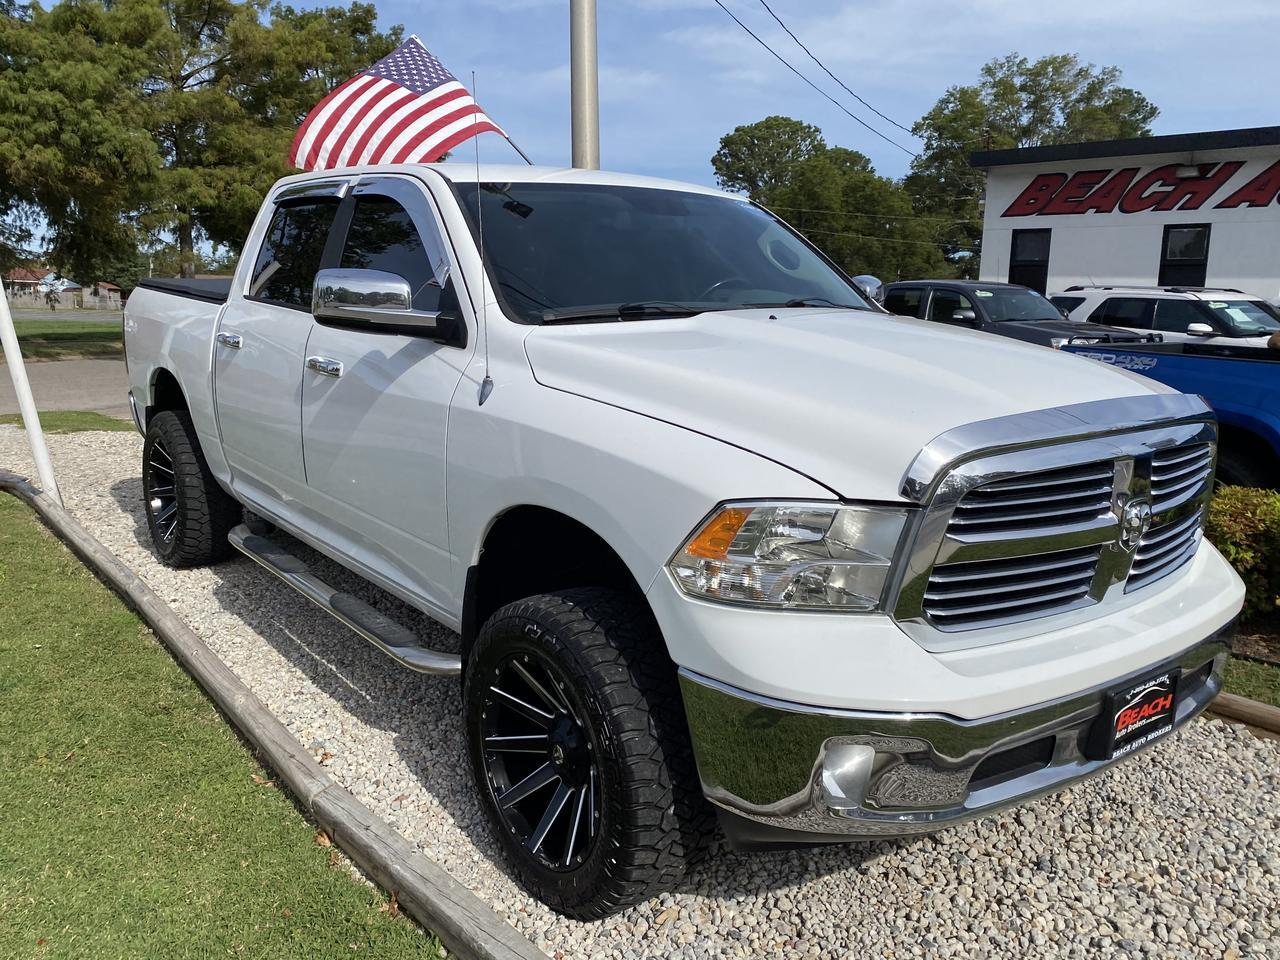 2014 DODGE RAM 1500 BIG HORN CREW CAB 4X4, WARRANTY, BLUETOOTH, BACKUP CAM, PARKING SENSORS, TOW PKG, SIRIUS RADIO! Norfolk VA